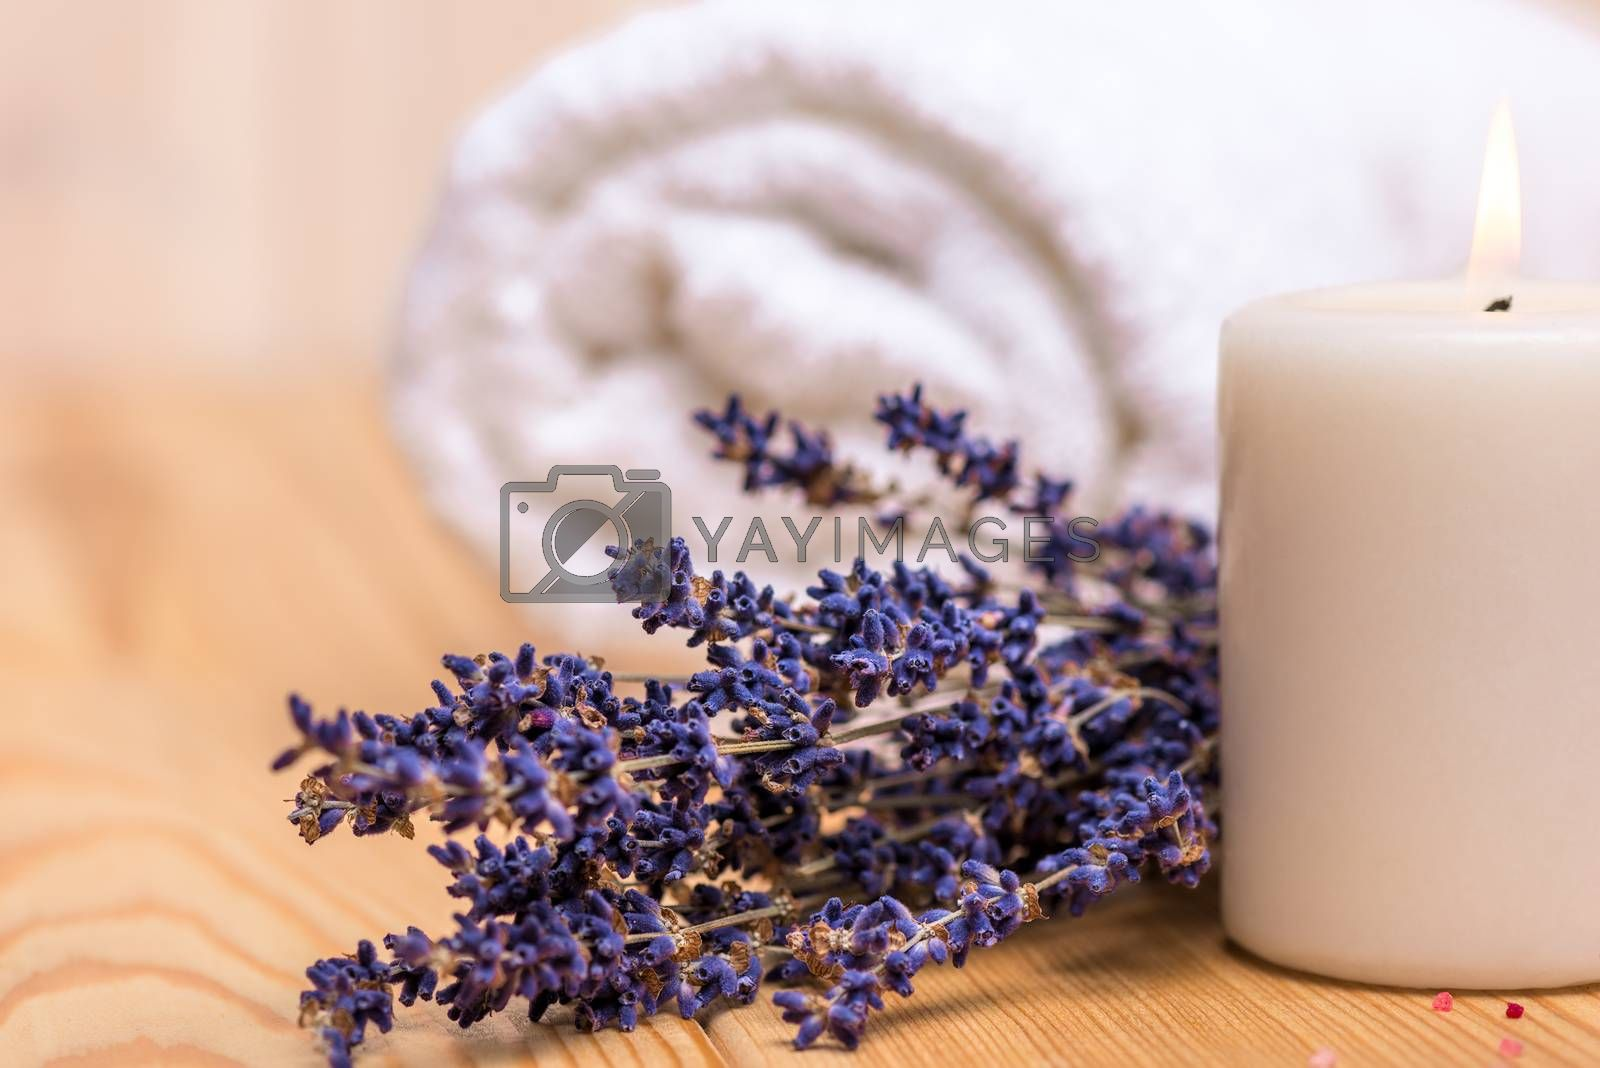 macro shot of dried lavender and burning candle by Labunskiy K.